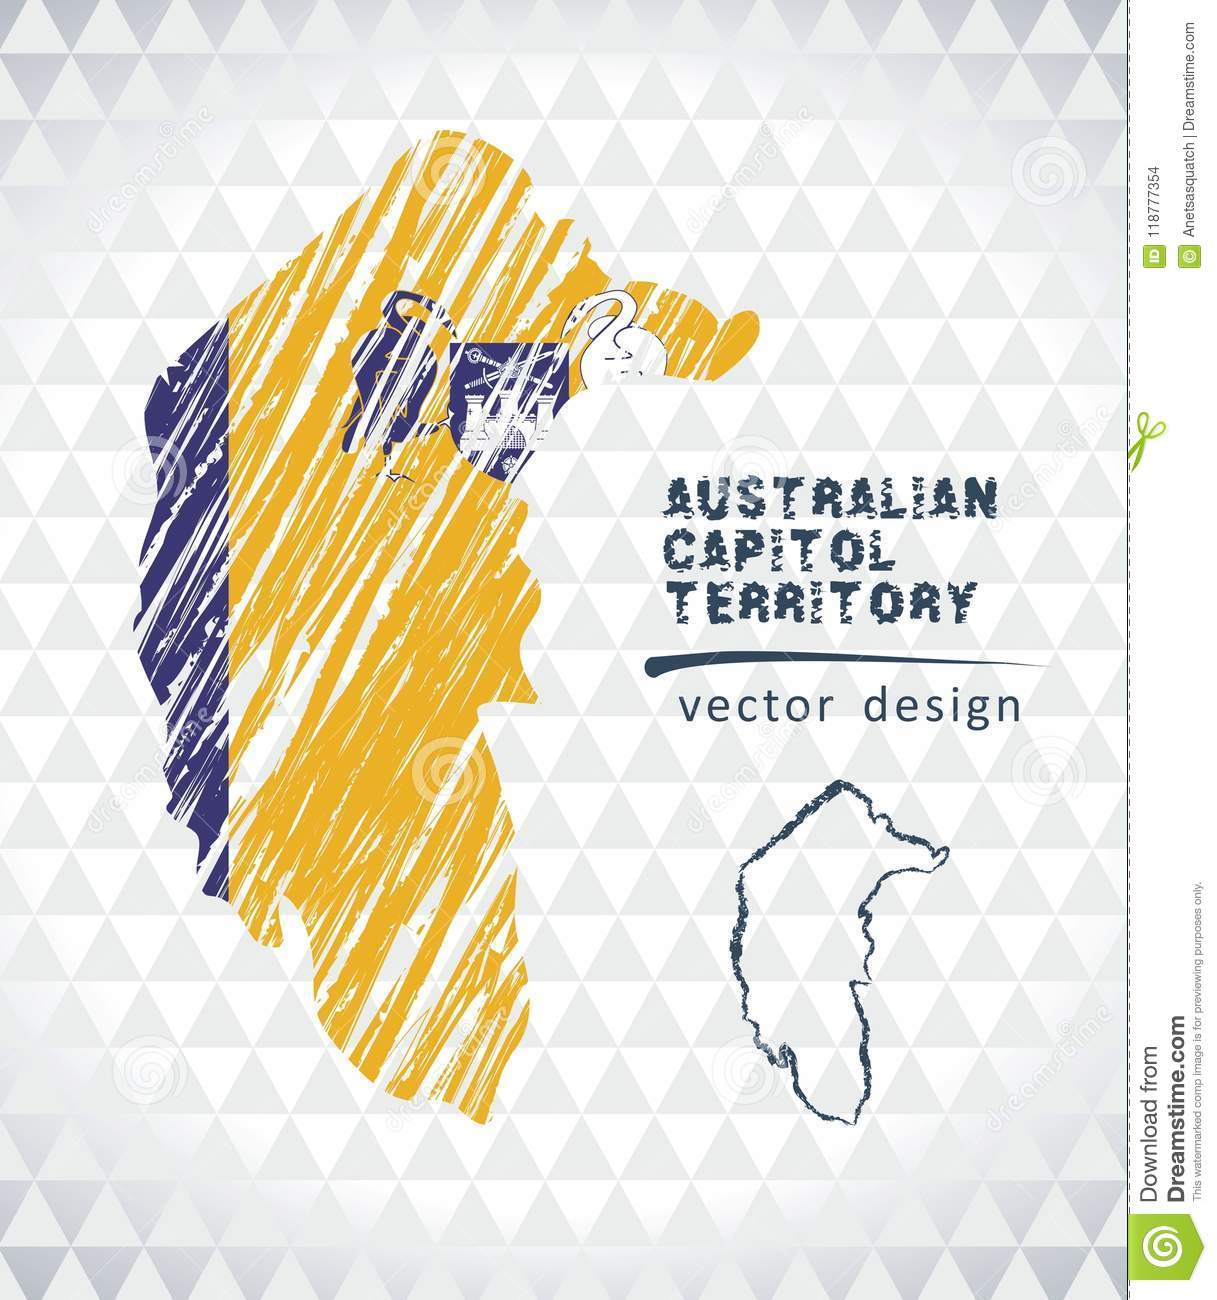 Map of Australian Capital Territory with hand drawn sketch pen map inside. Vector illustration